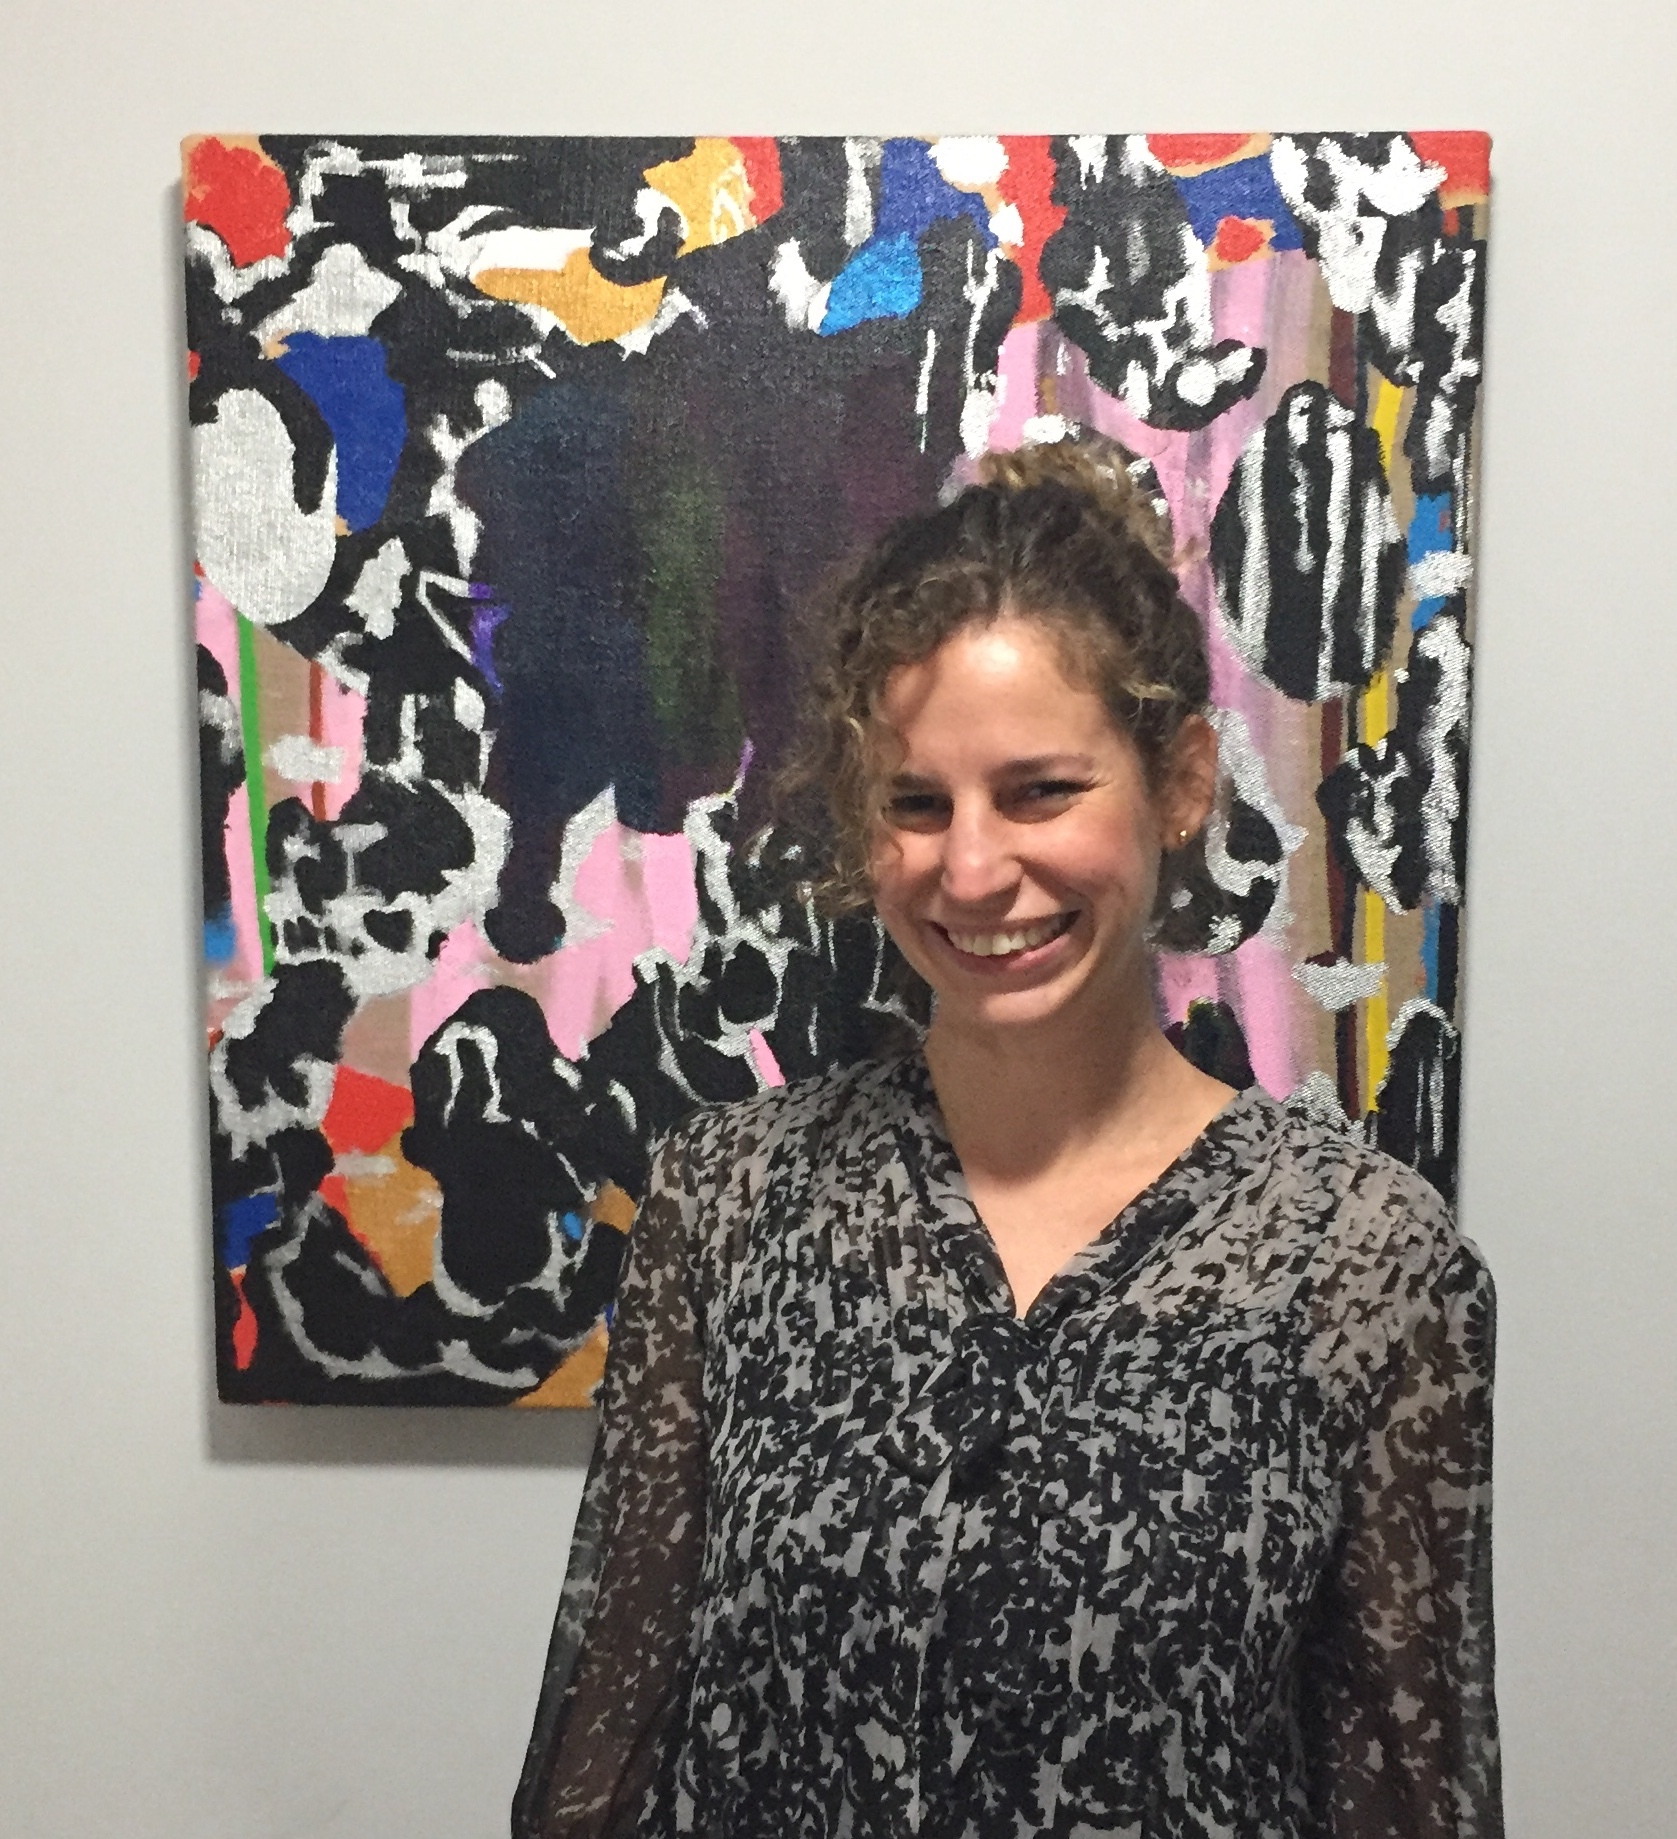 Dahlia Tulett-Gross   Dahlia Tulett-Gross is the Co-Director of 65GRAND, a contemporary art gallery in Chicago, an independent curator, a tutor for college-aged art students, and a mom! She has a BFA in studio art from the School of the Art Institute of Chicago (SAIC).